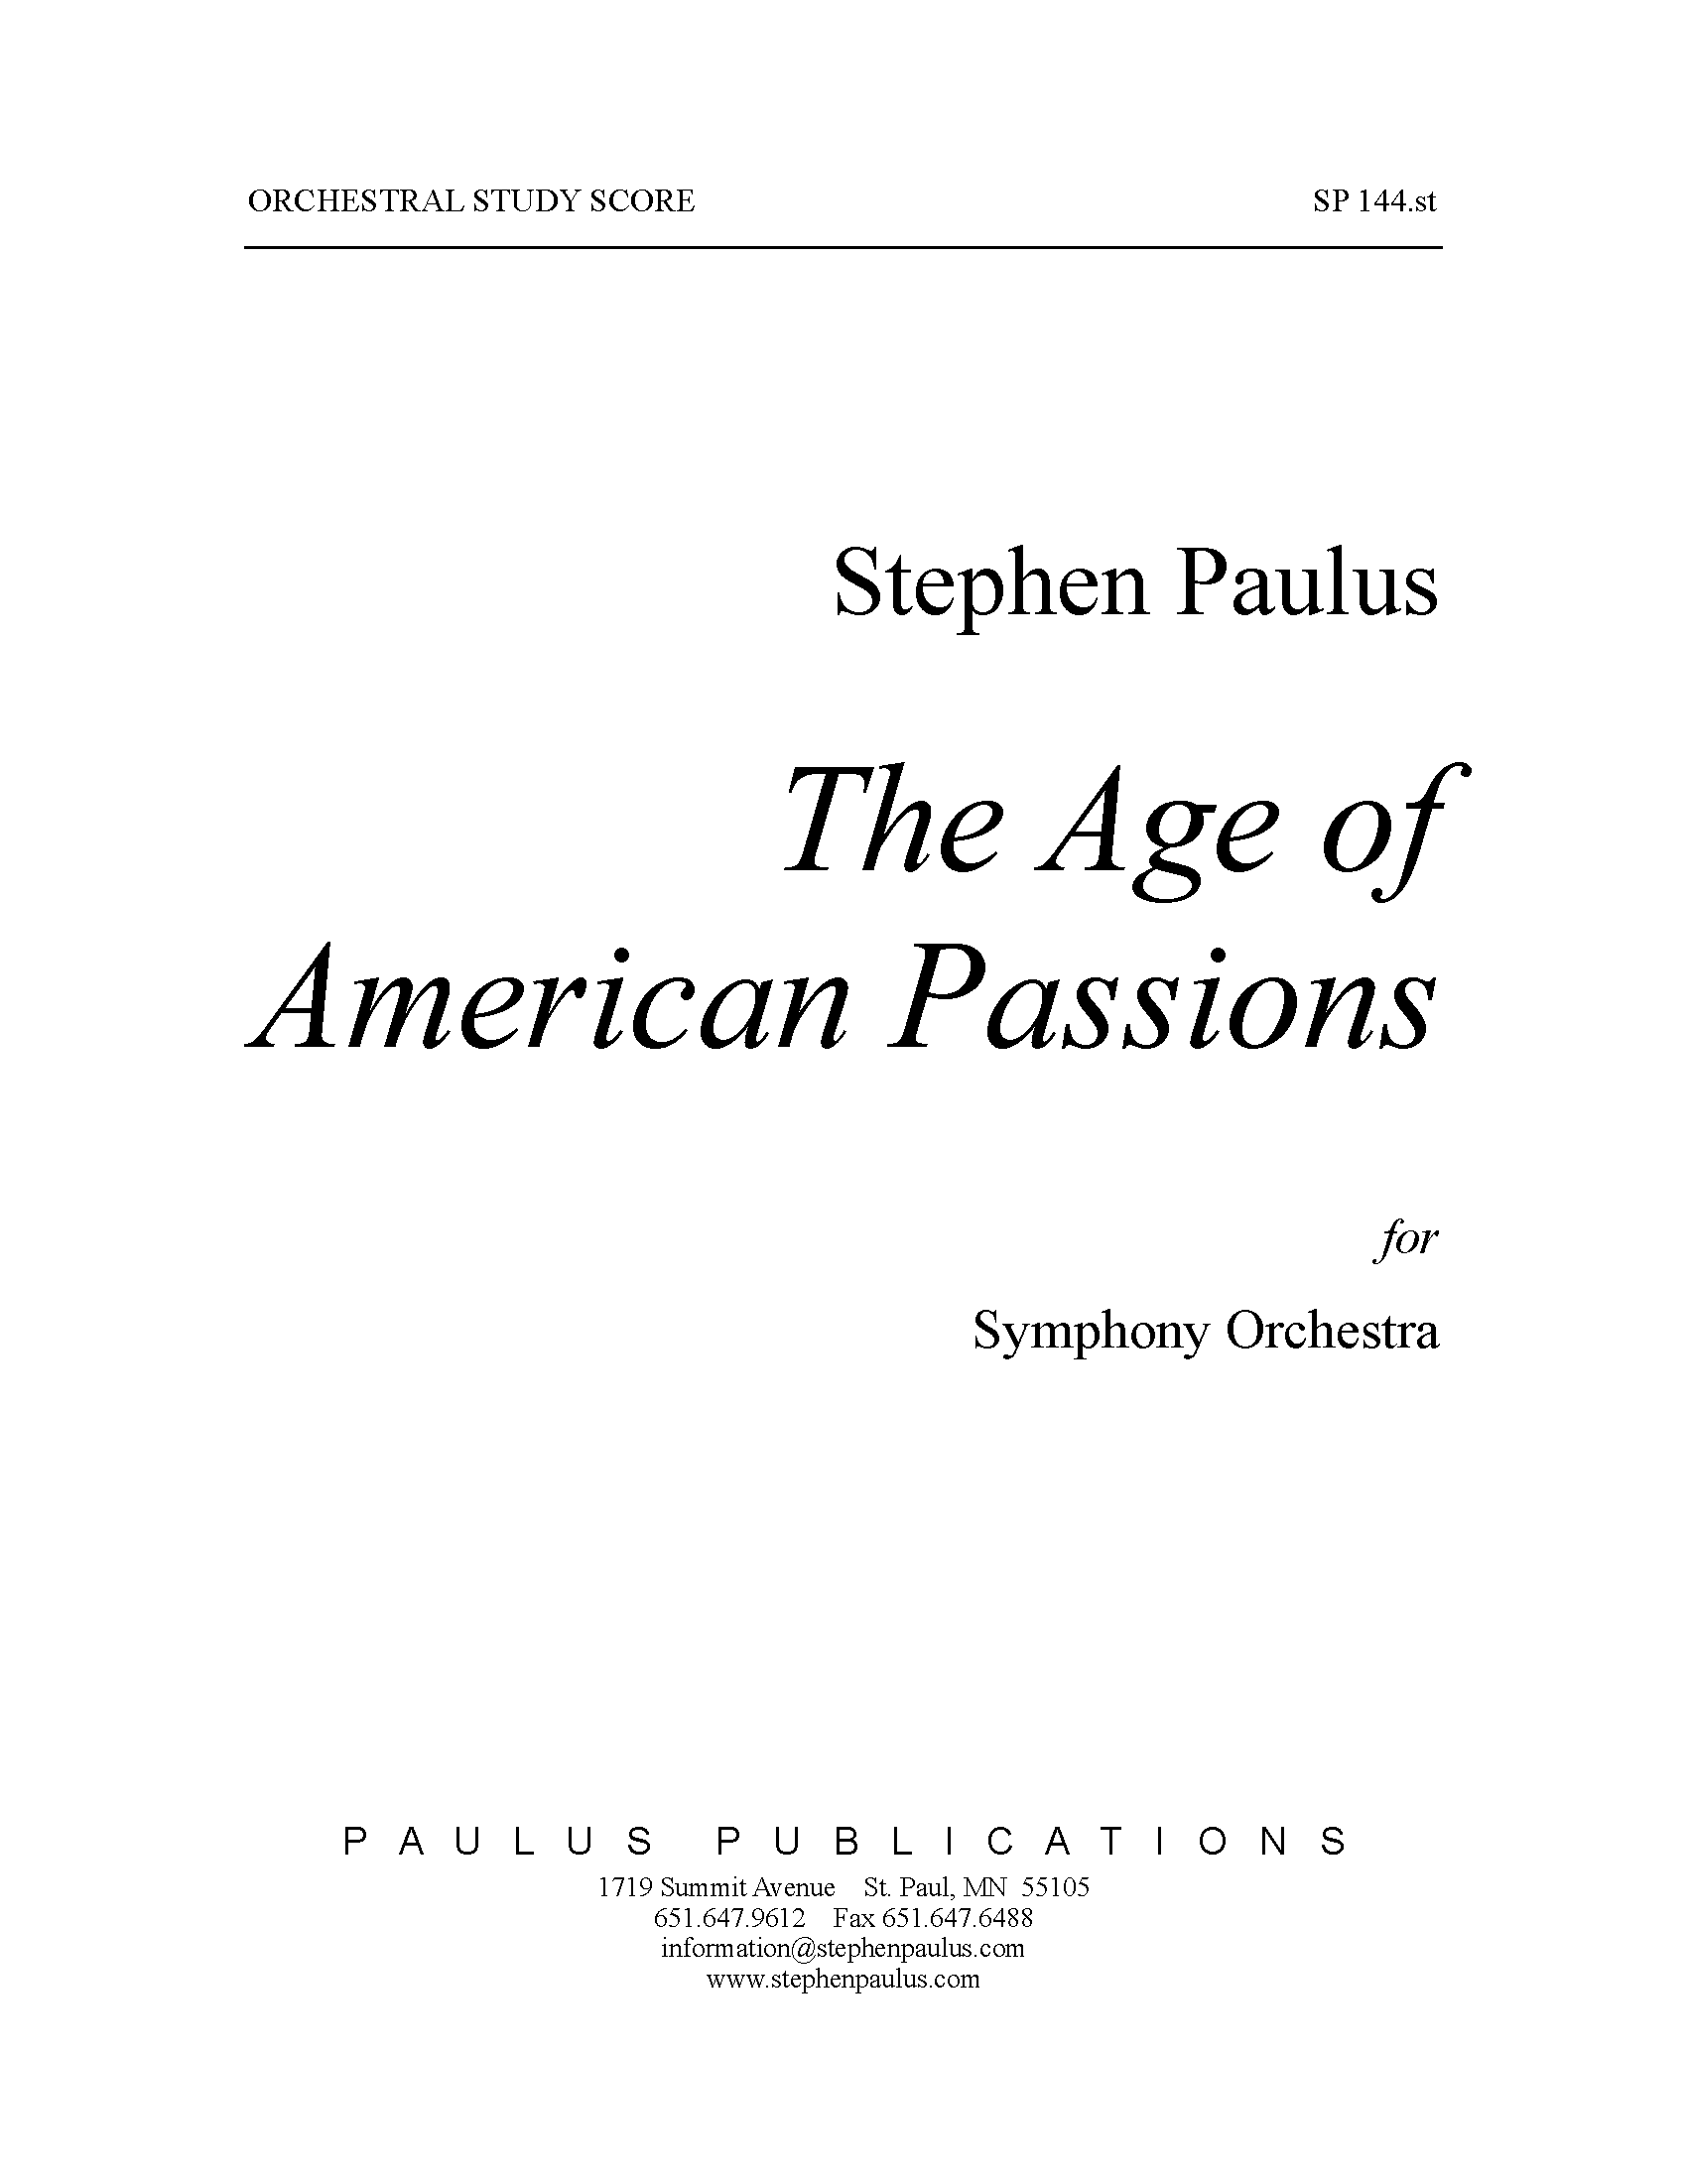 Age of American Passions, The for Orchestra